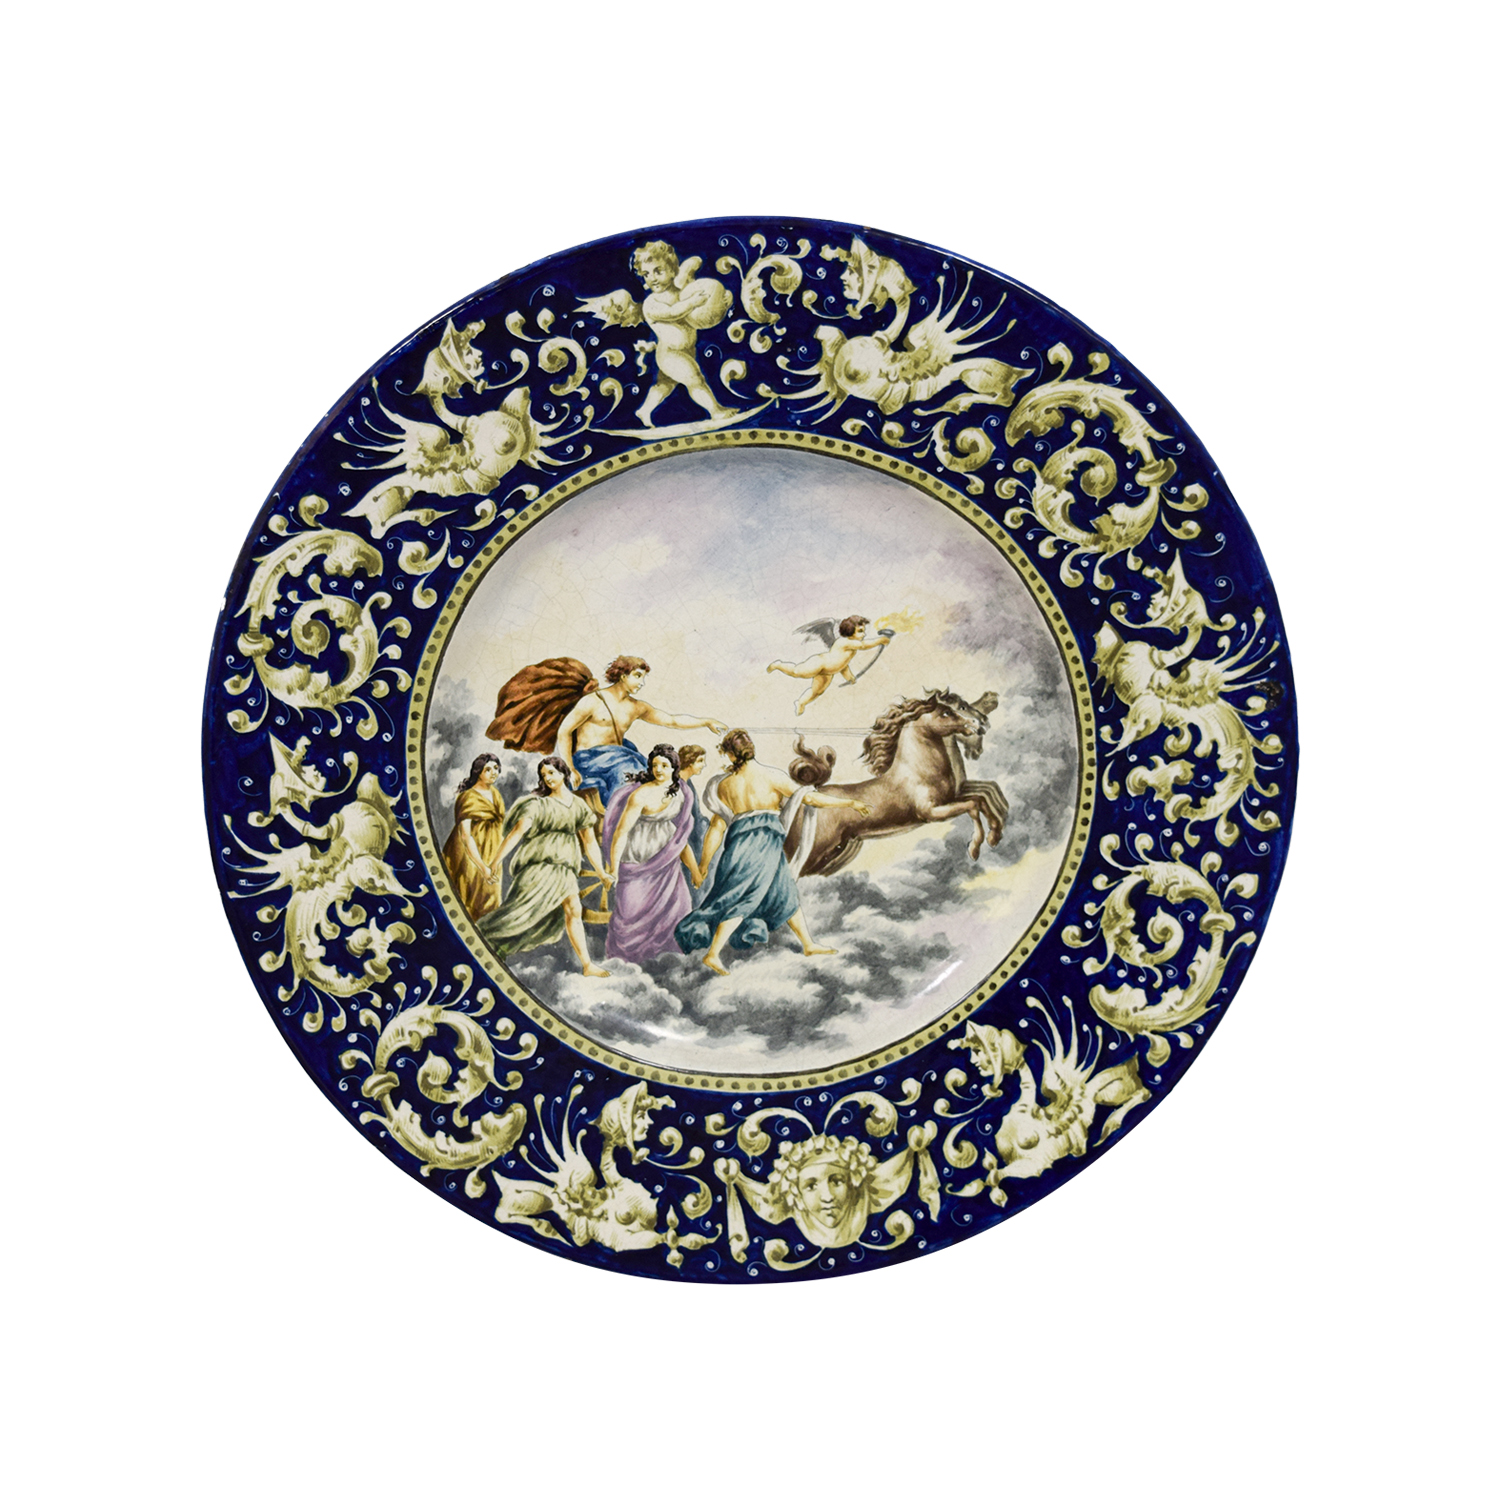 shop Antique Dish online